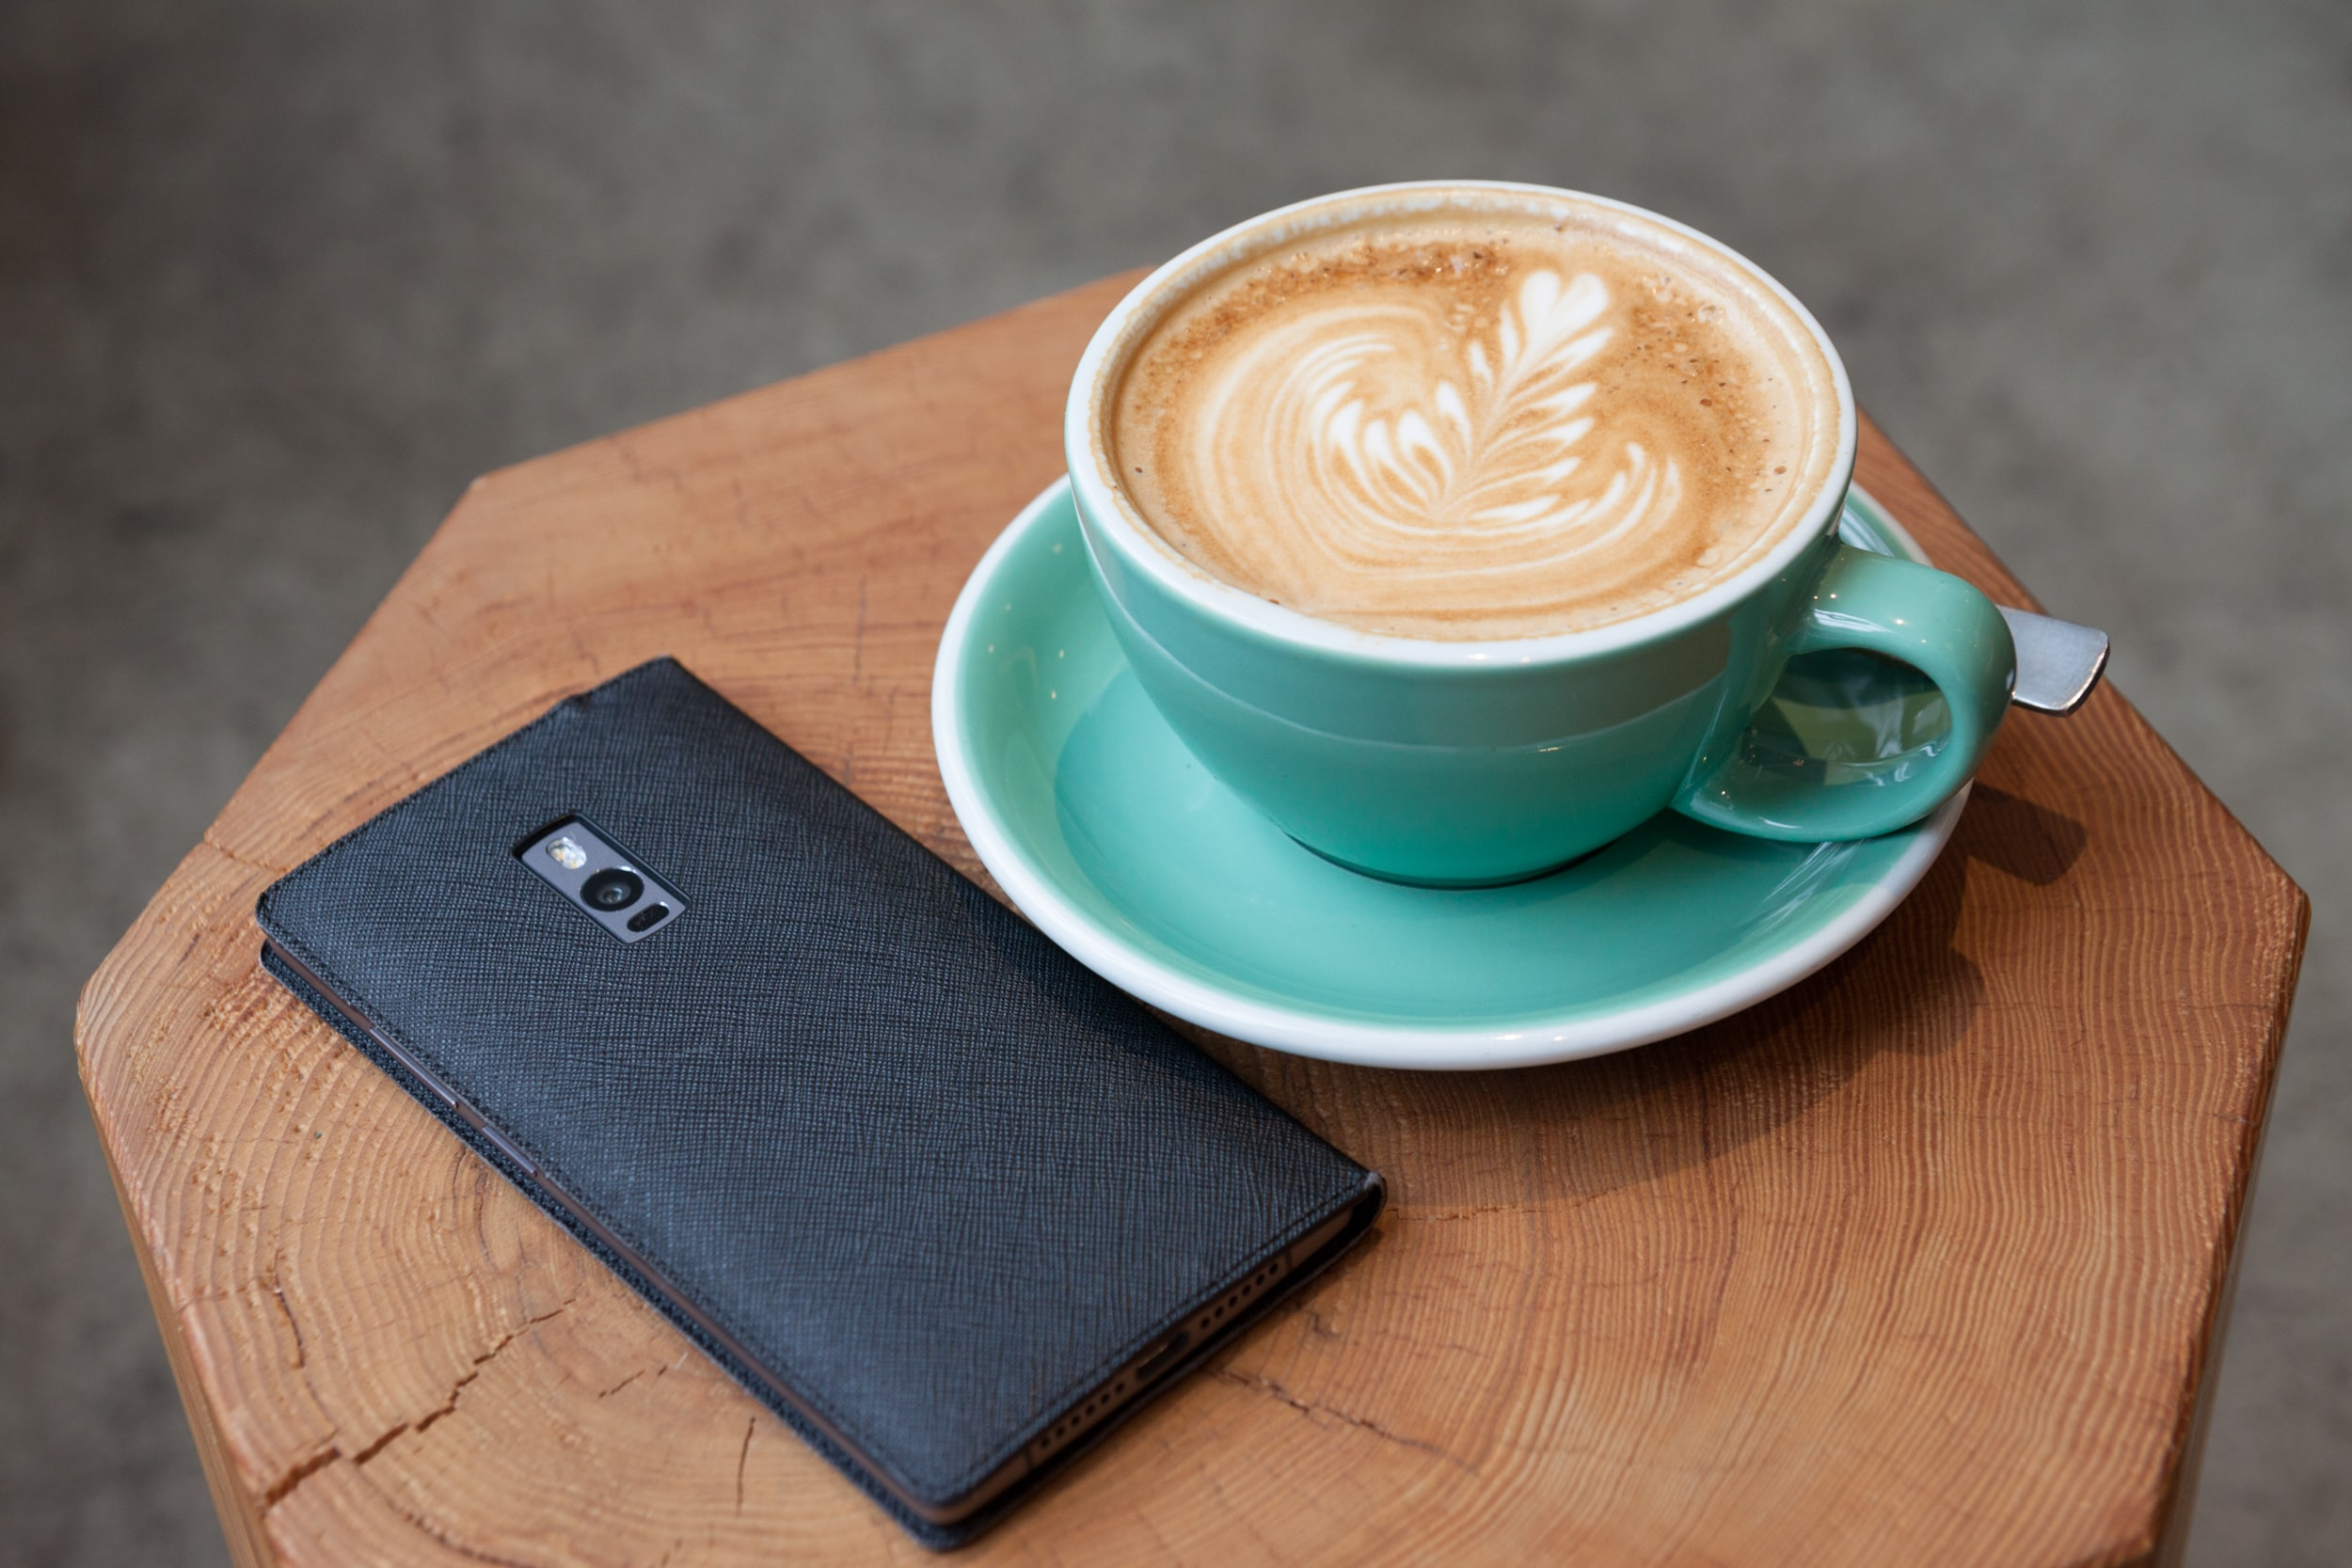 A smartphone on a wooden surface next to a cup of coffee with latte art